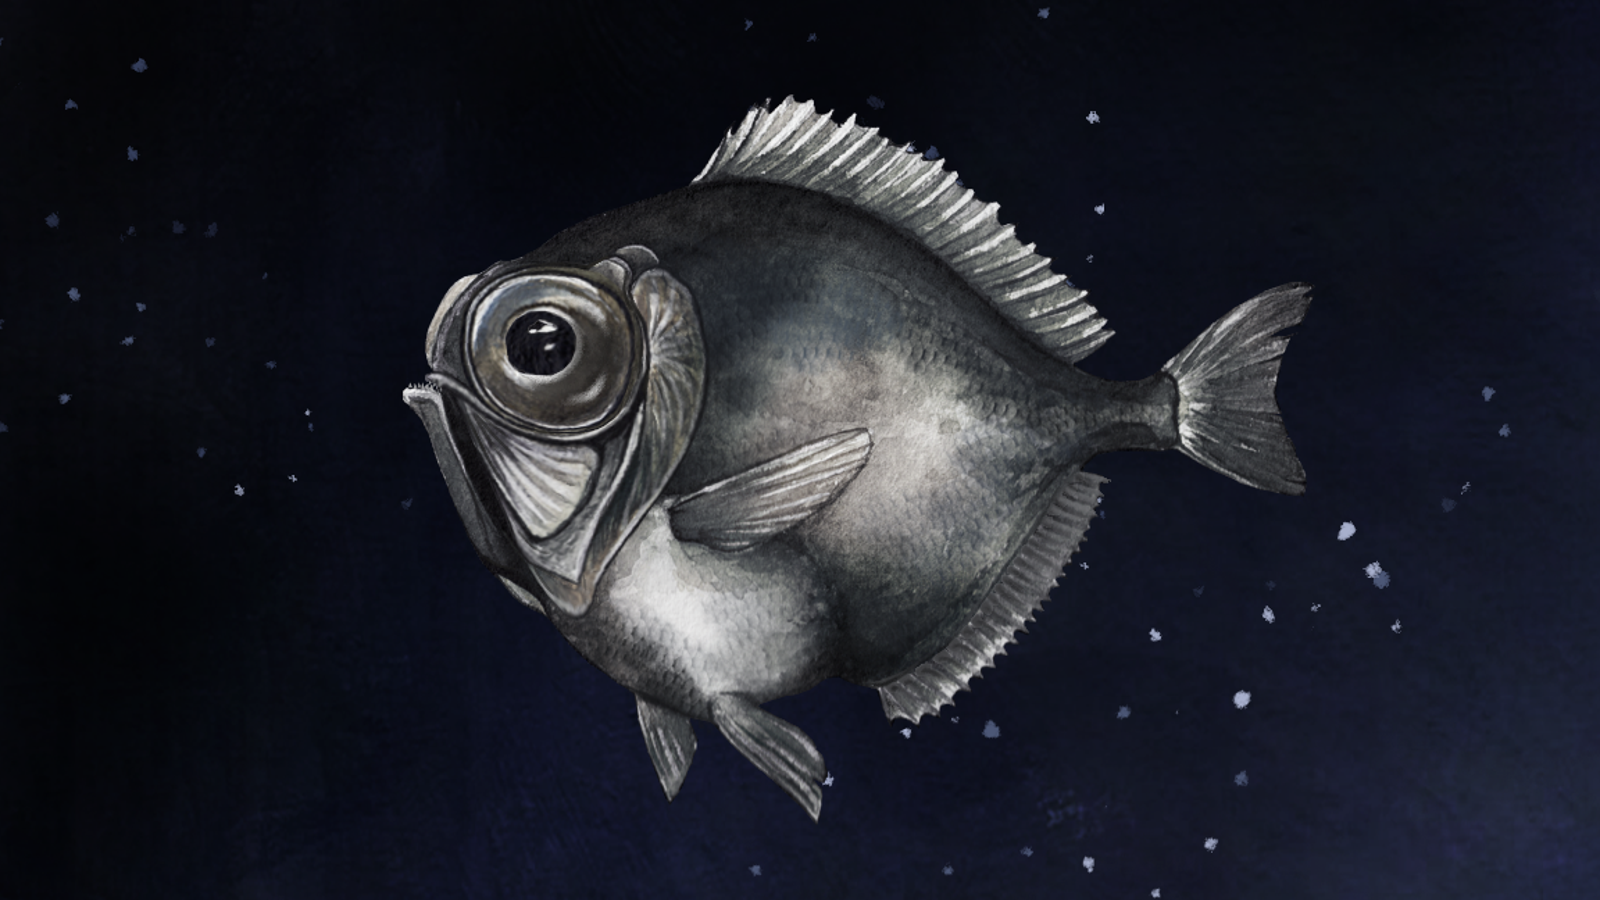 Progressive Near Me >> Some Deep-Sea Fish Can See Color in Near Total Darkness